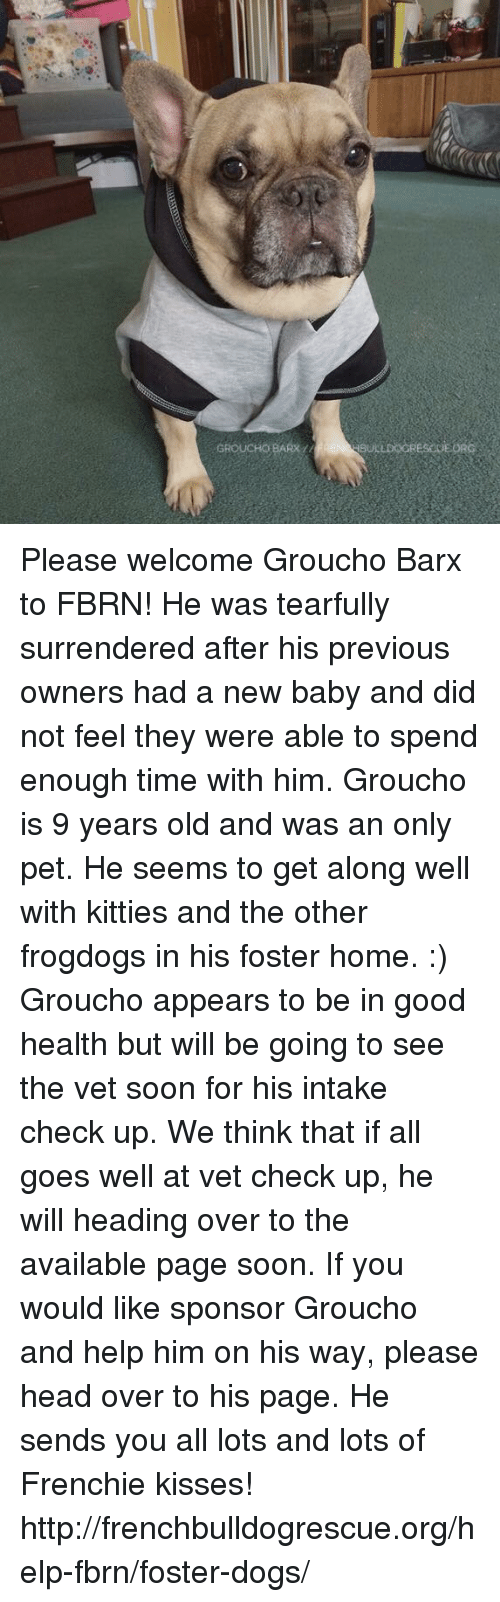 Surrend: GROUCHOBARx  BULLDOGRES GEORG Please welcome Groucho Barx to FBRN! He was tearfully surrendered after his previous owners had a new baby and did not feel they were able to spend enough time with him.   Groucho is 9 years old and was an only pet. He seems to get along well with kitties and the other frogdogs in his foster home. :)  Groucho appears to be in good health but will be going to see the vet soon for his intake check up. We think that if all goes well at vet check up, he will heading over to the available page soon. If you would like sponsor Groucho and help him on his way, please head over to his page. He sends you all lots and lots of Frenchie kisses!  http://frenchbulldogrescue.org/help-fbrn/foster-dogs/